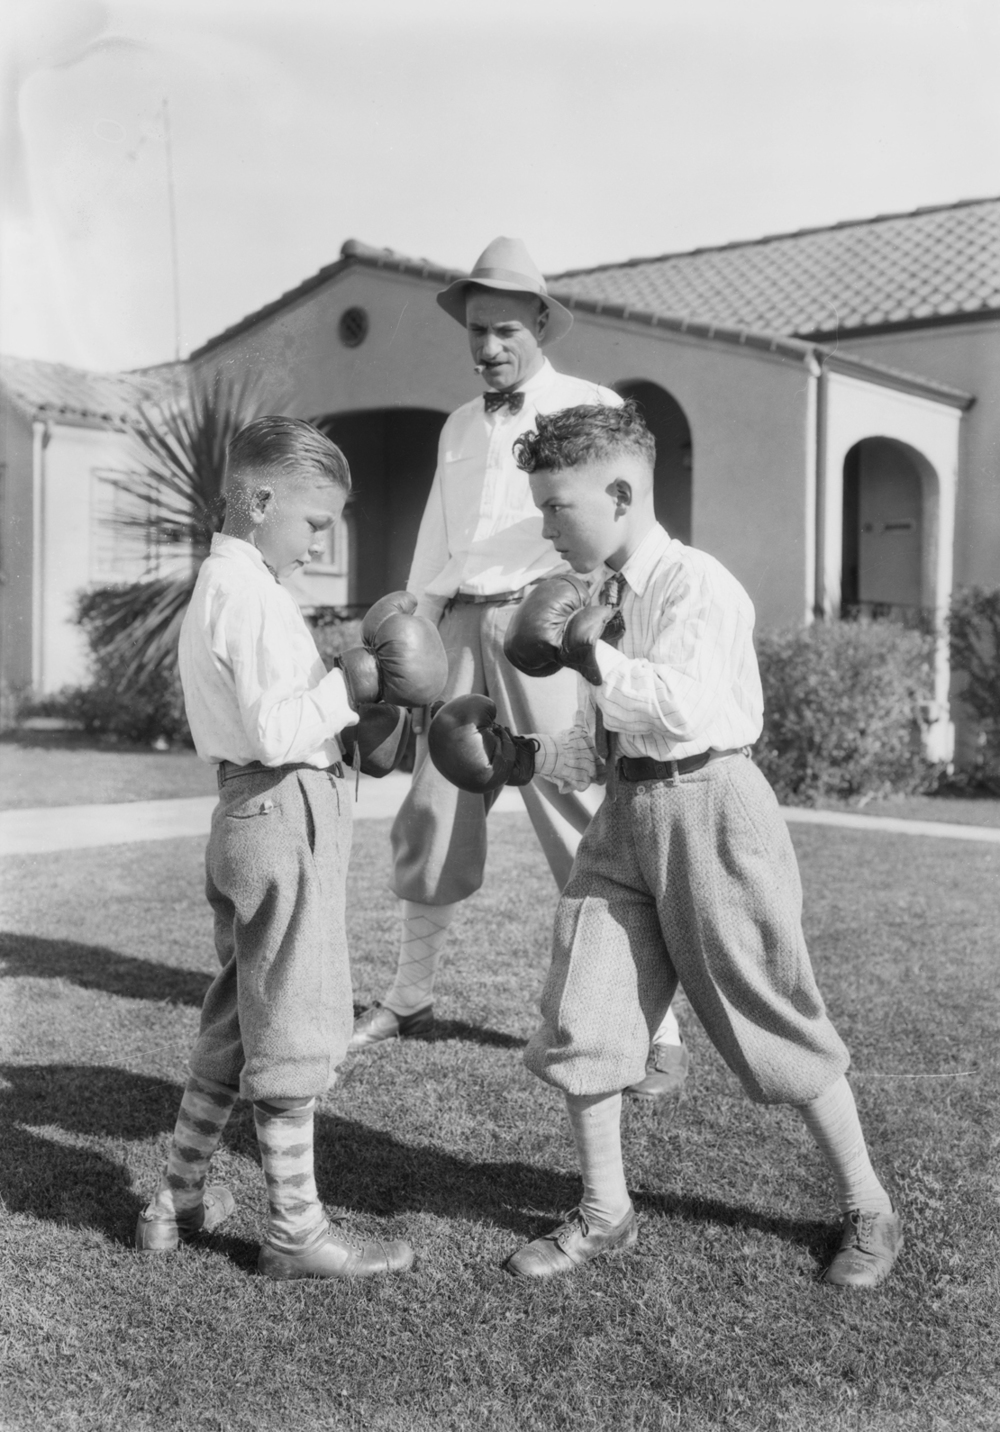 View_park_kids_making_movies_Southern_California_1928_image_5.jpg